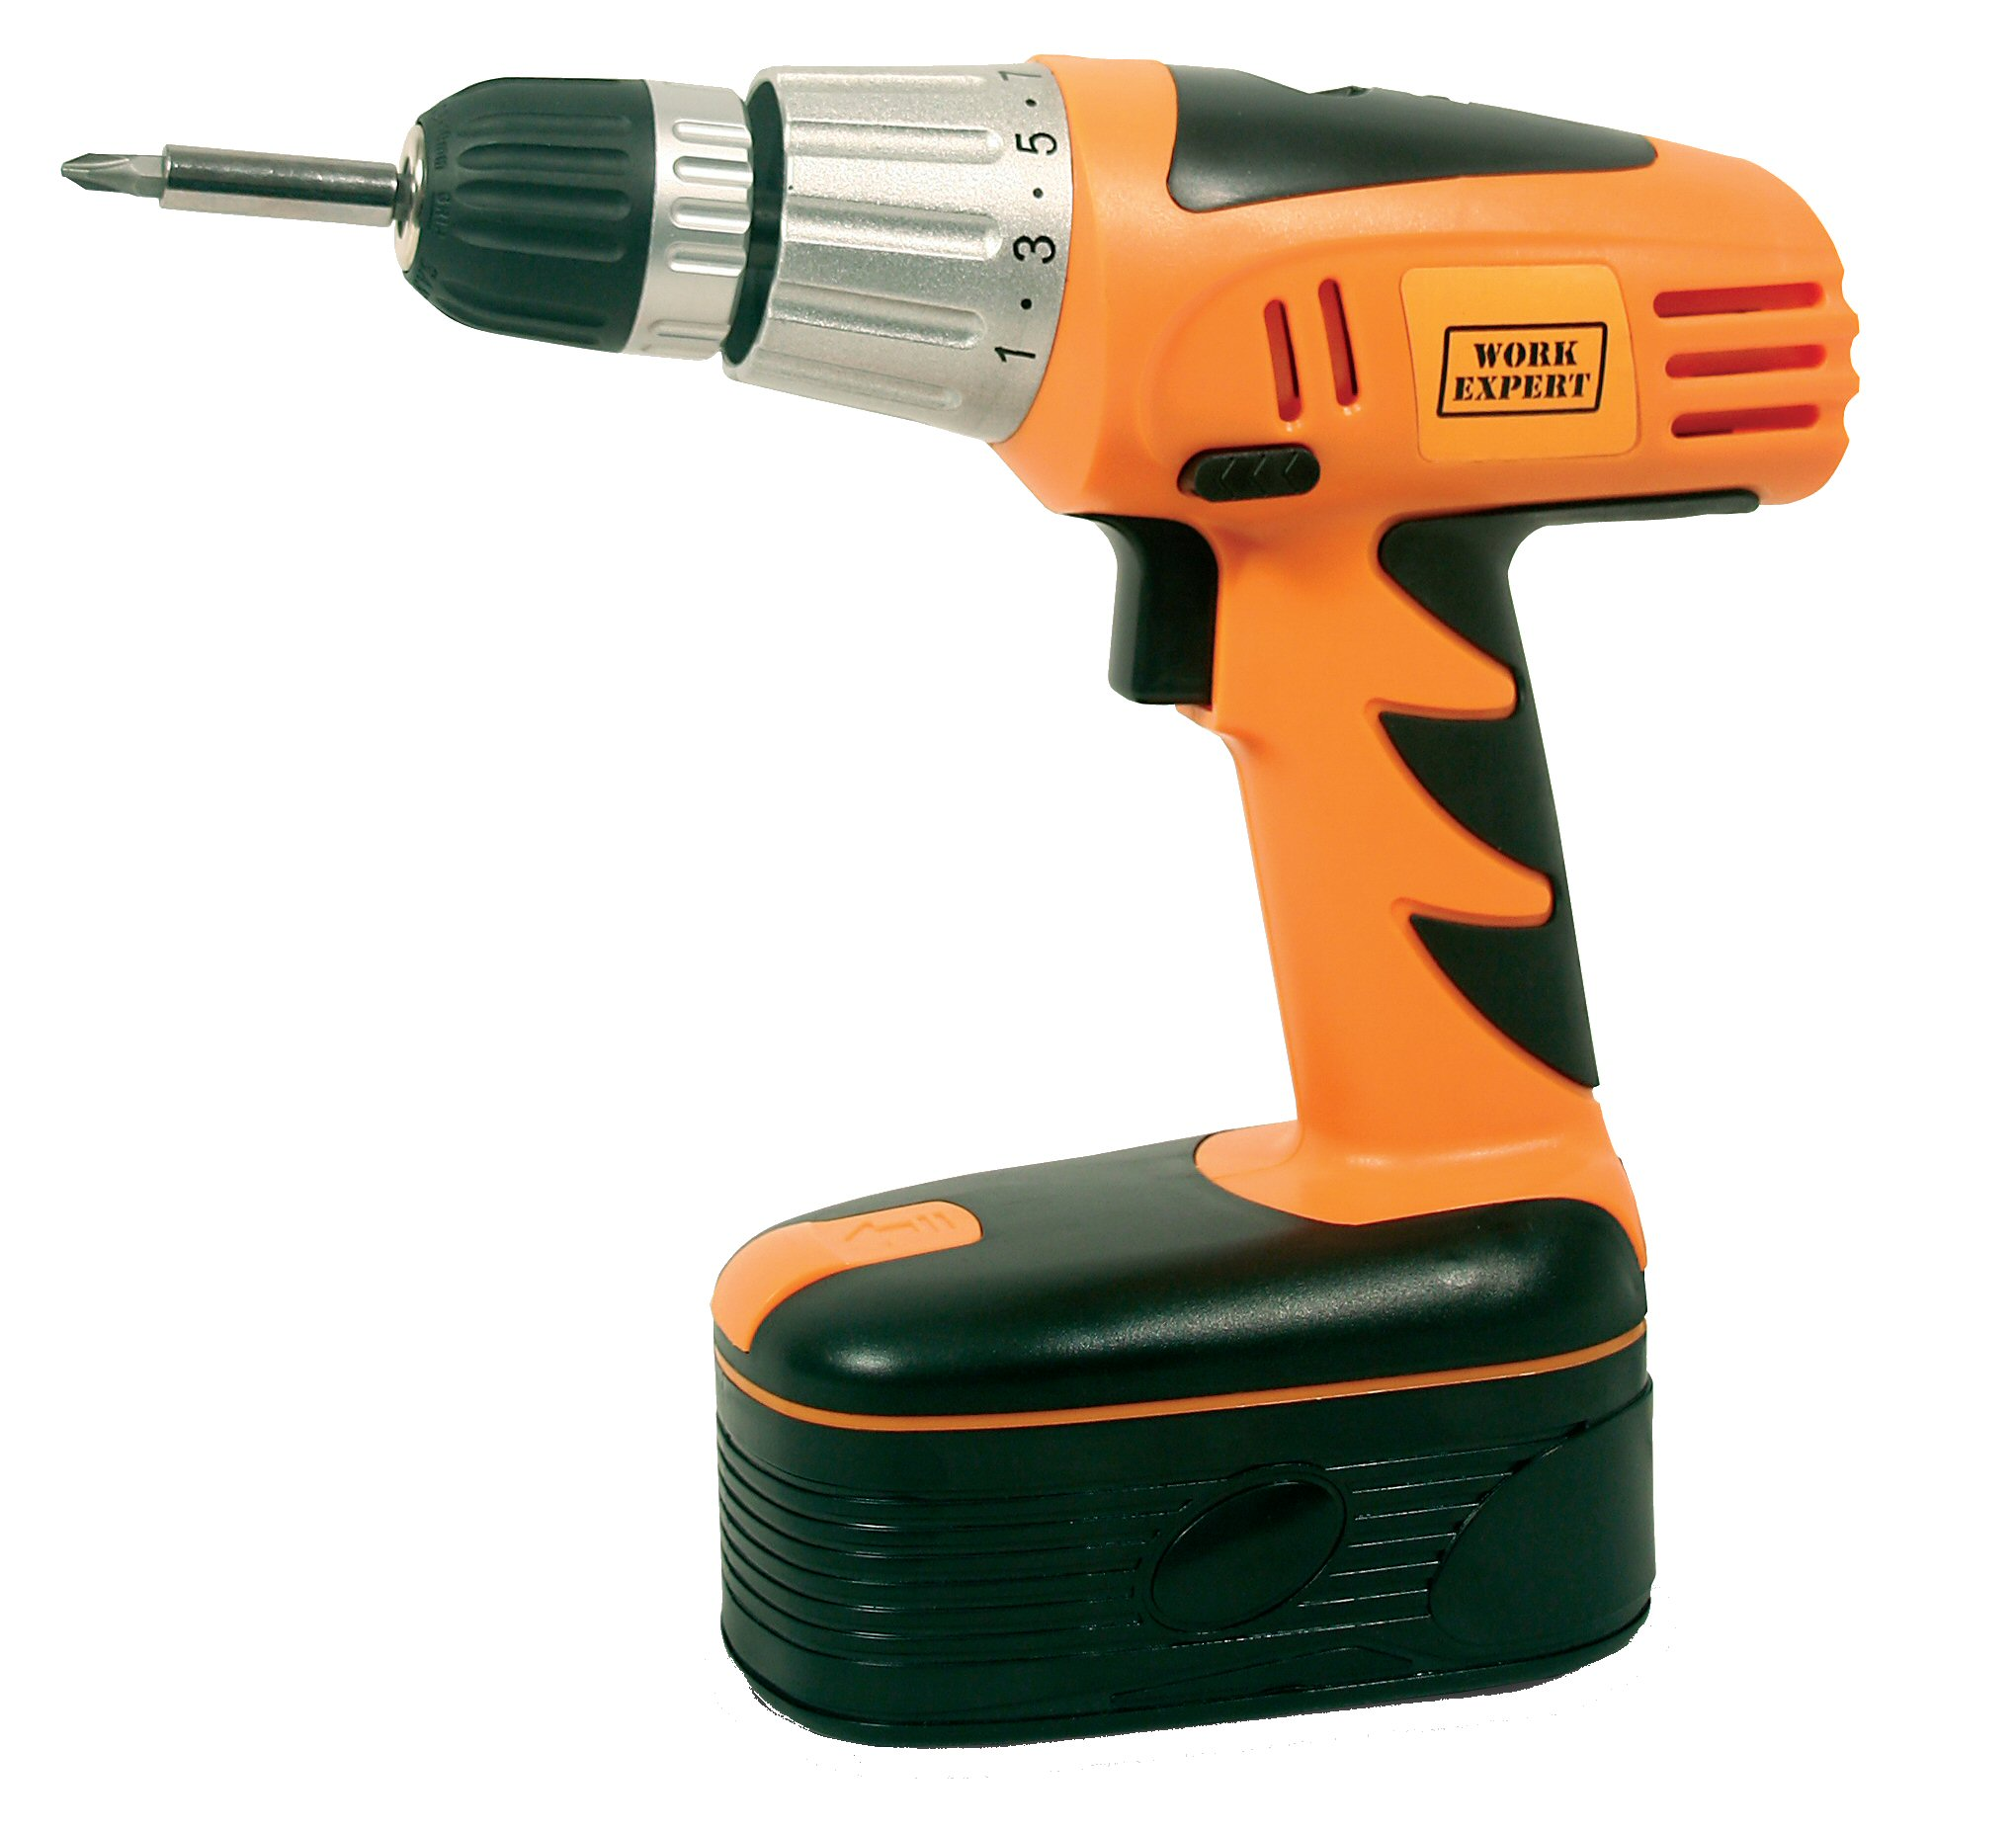 Gamma Accuboor 18v Cordless Drill Set Review Compare Prices Buy Online